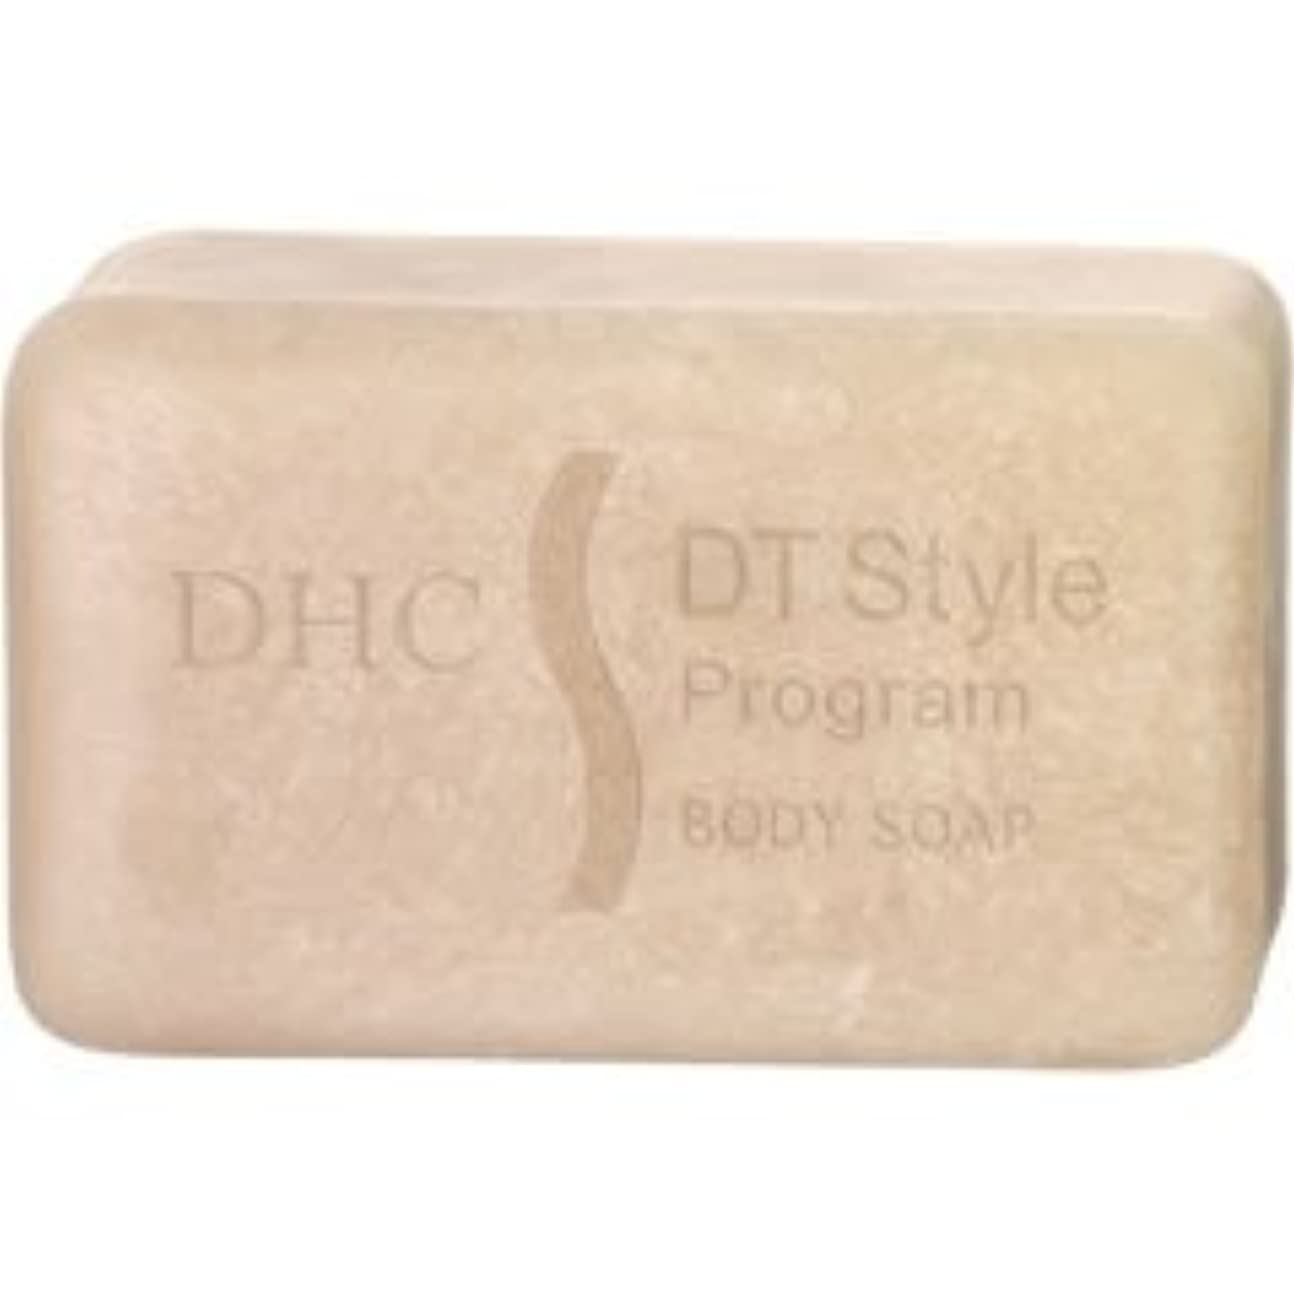 DHC DSボディソープ 150g